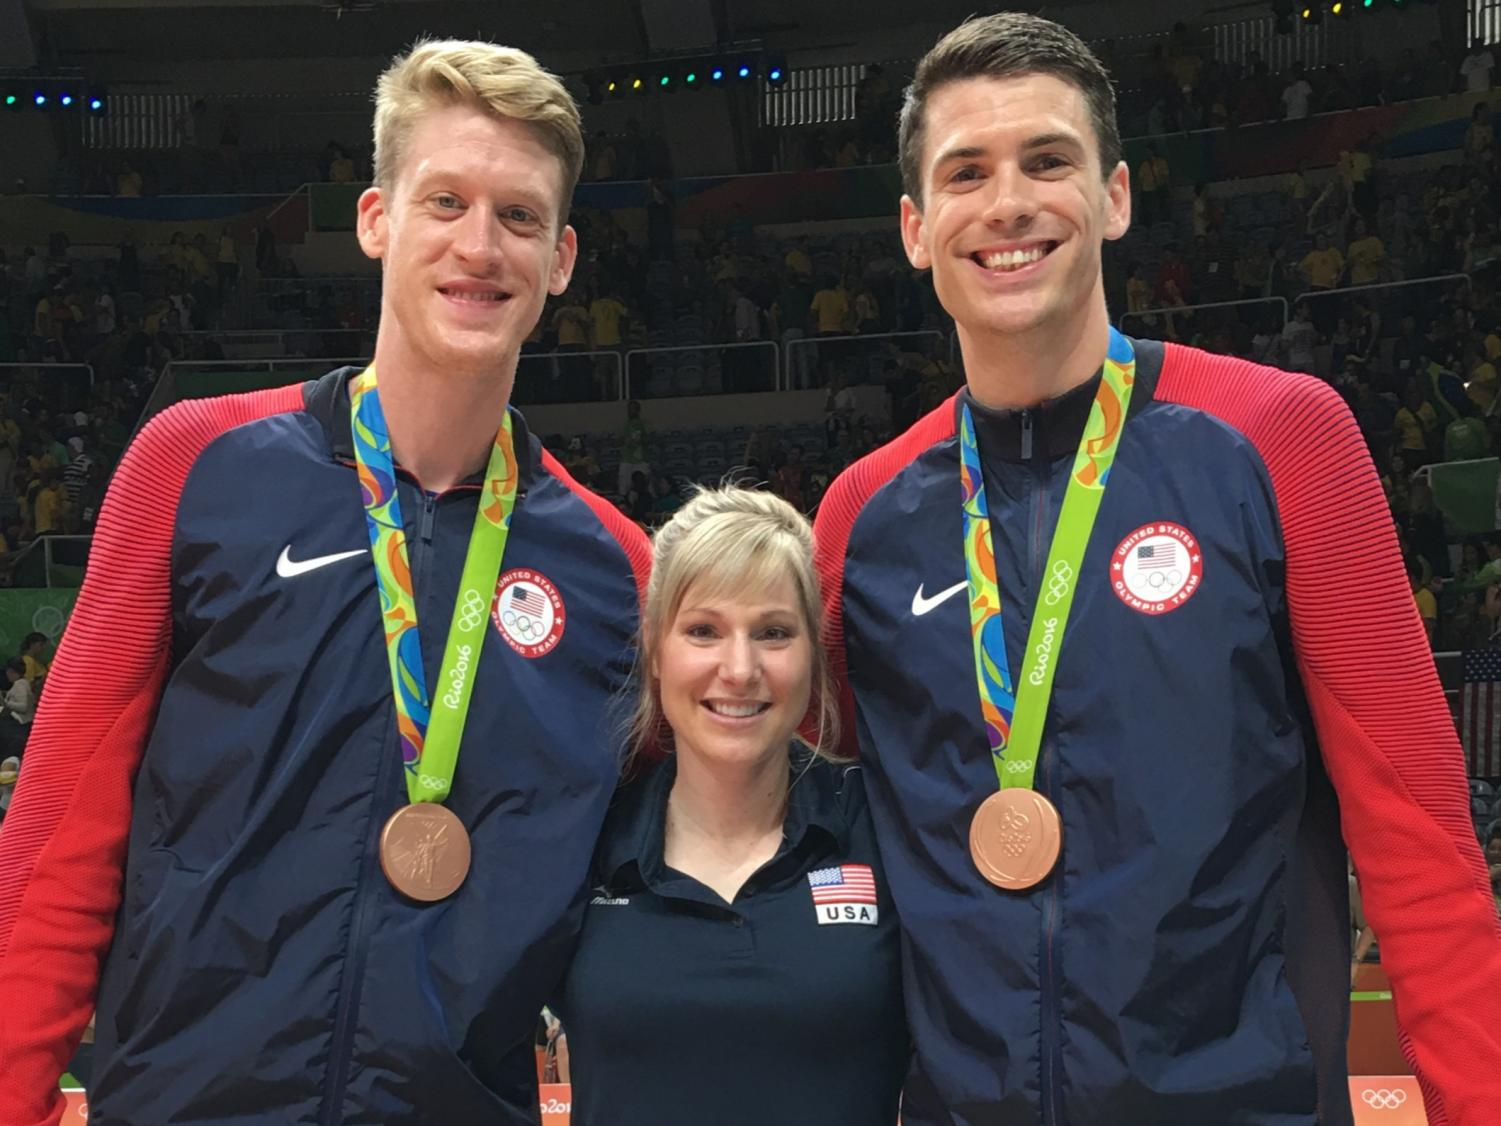 Andrea Becker poses for a photo between US National volleyball players Max Holt and Matt Anderson. The team won bronze at the 2016 Olympics.